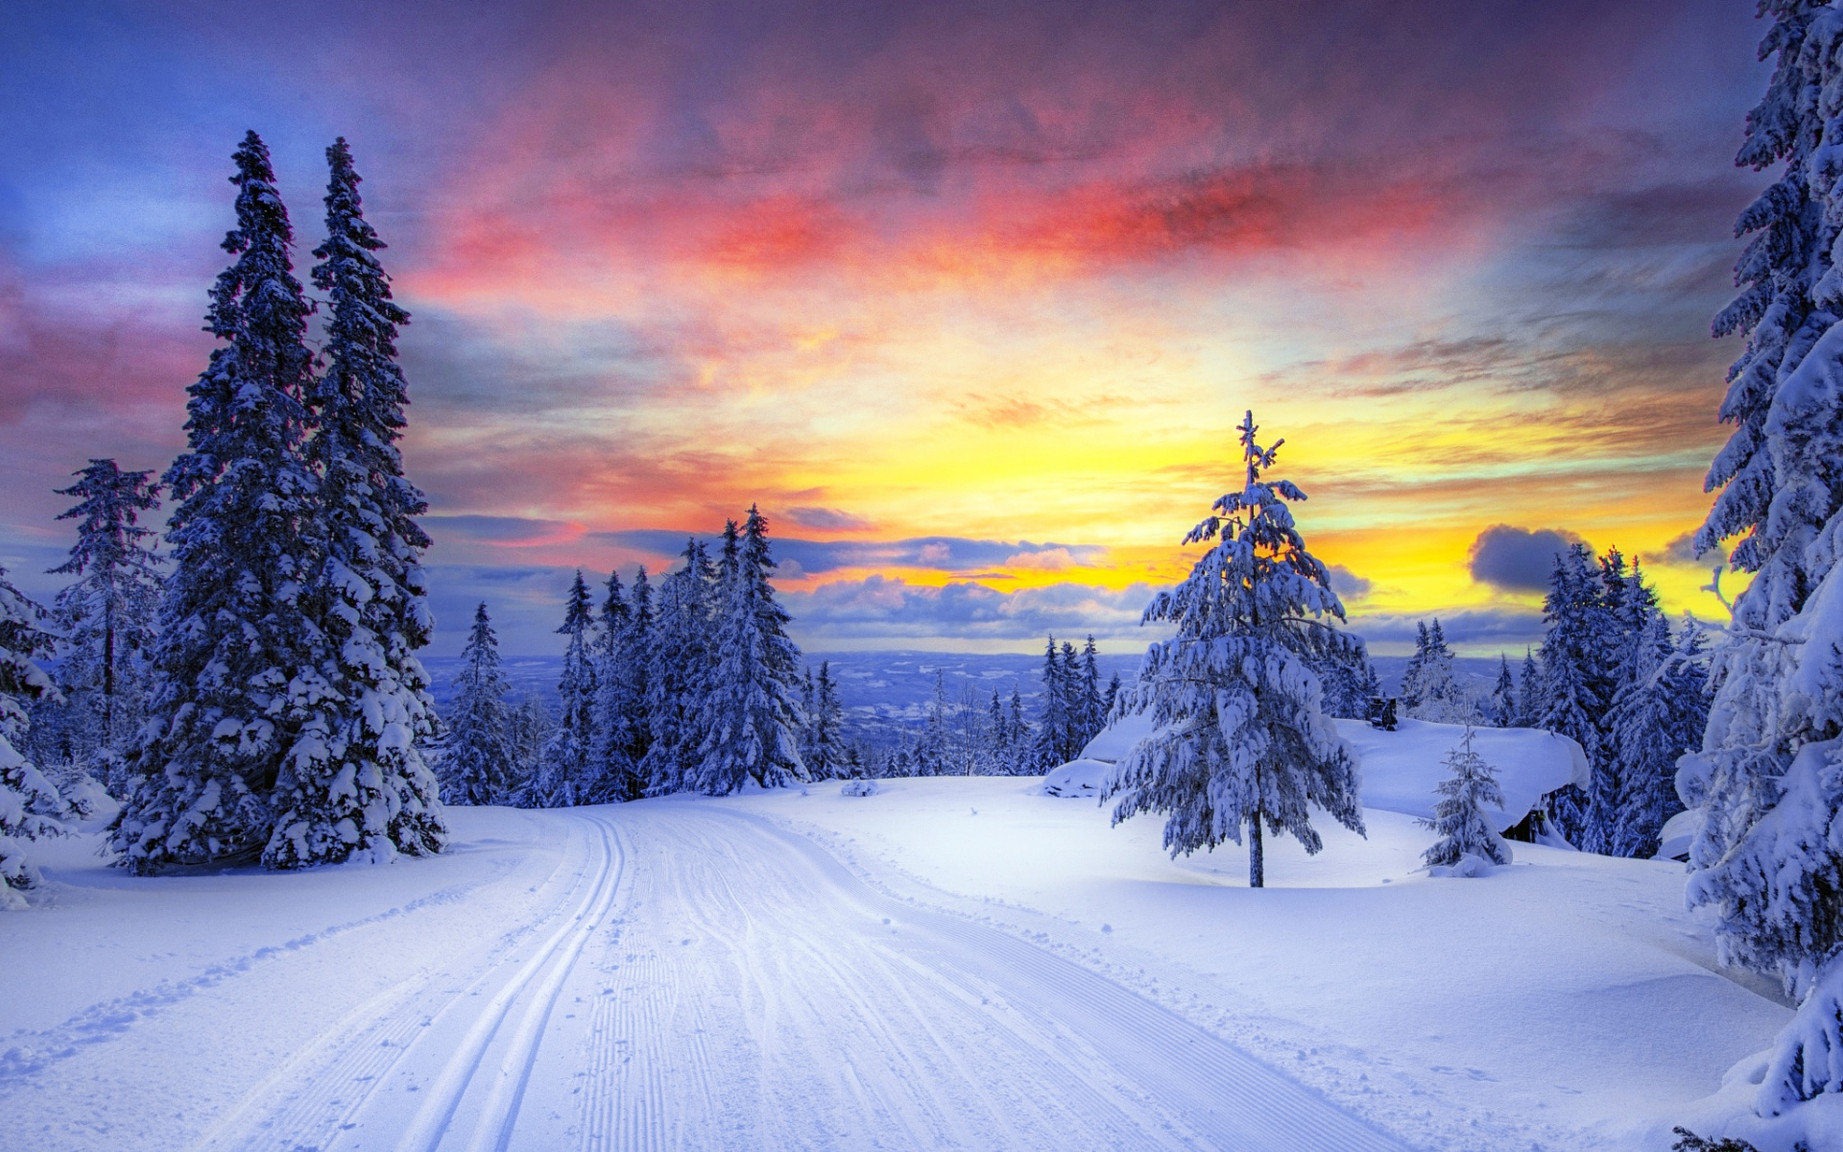 ws_Winter_Trees_Snowy_Road_Sunset_1920x1